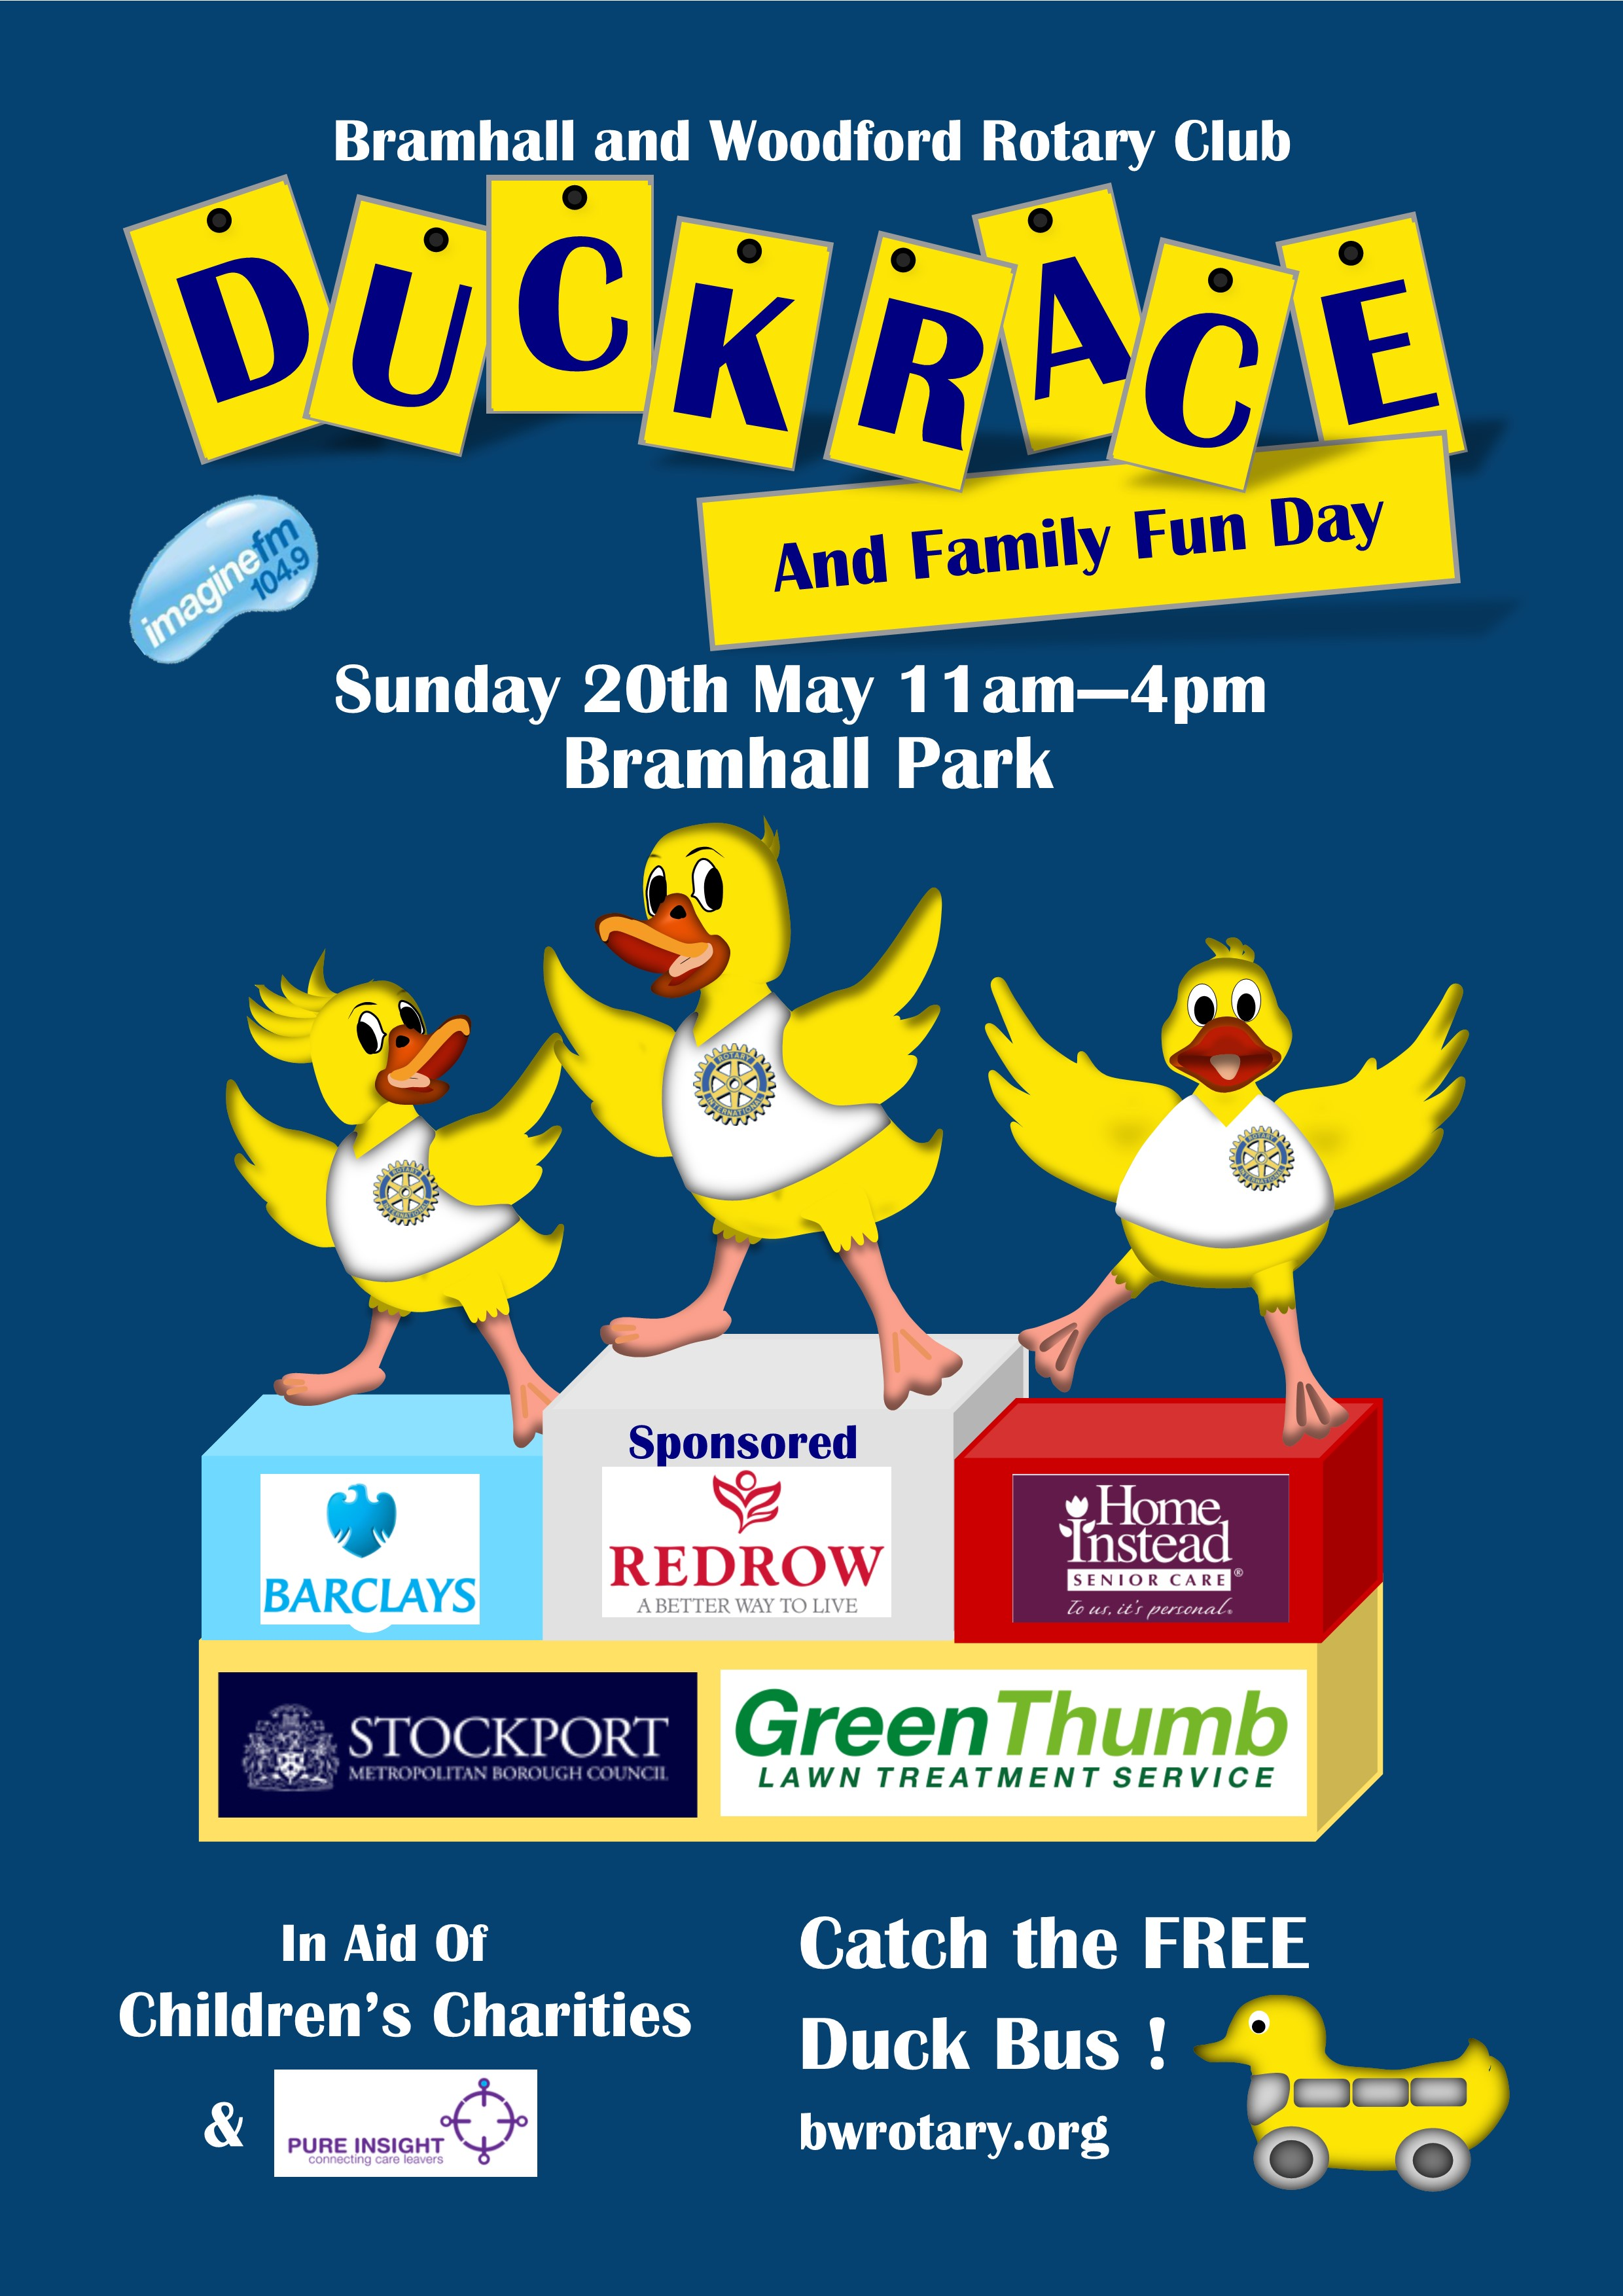 Bramhall & Woodford Rotary Club Duck Race and Family Fun Day